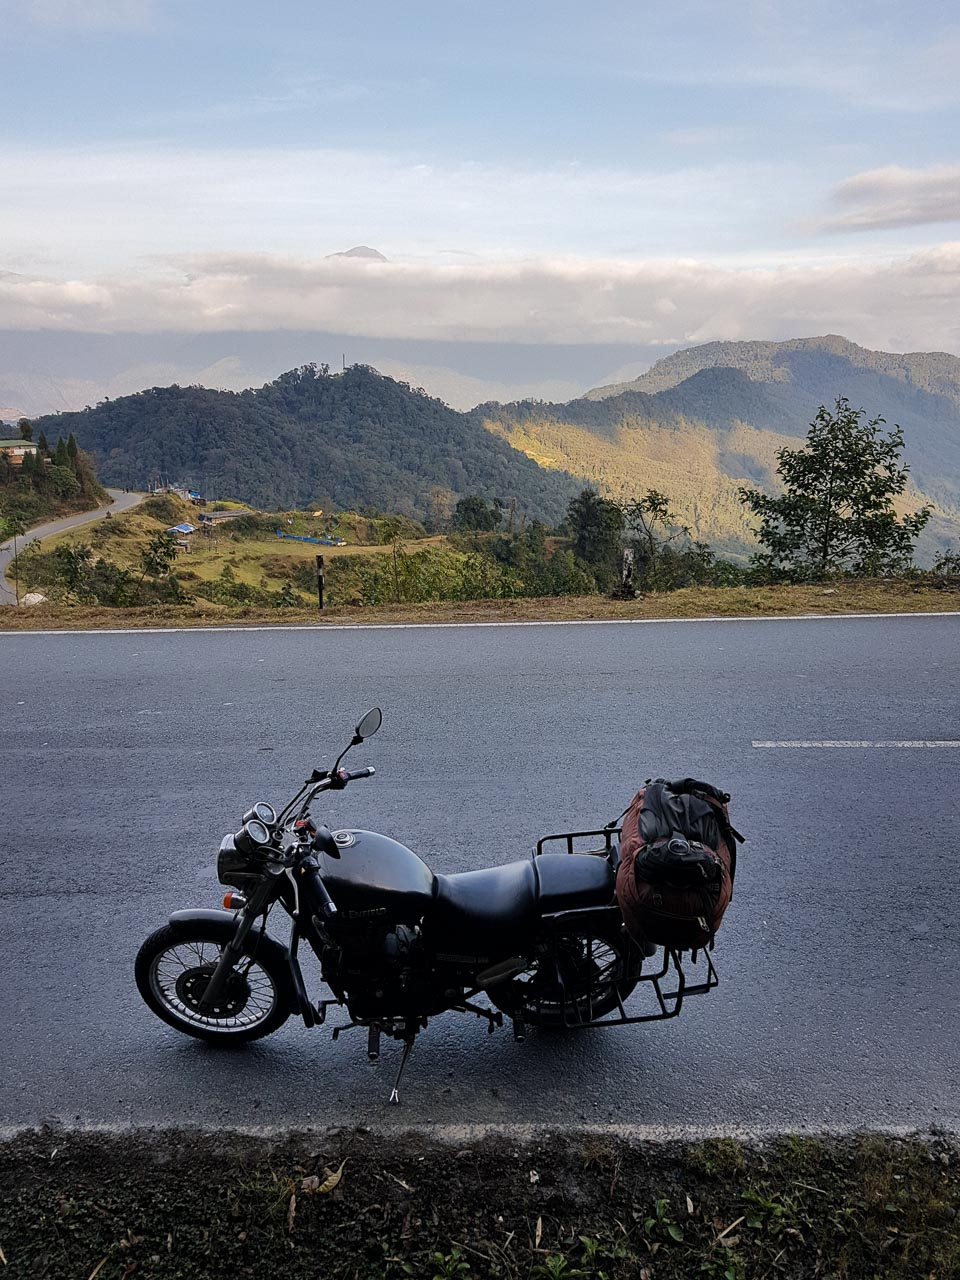 Somewhere between Phuentsholing and Thimphu. The road are views are both just as good in this picture the whole way